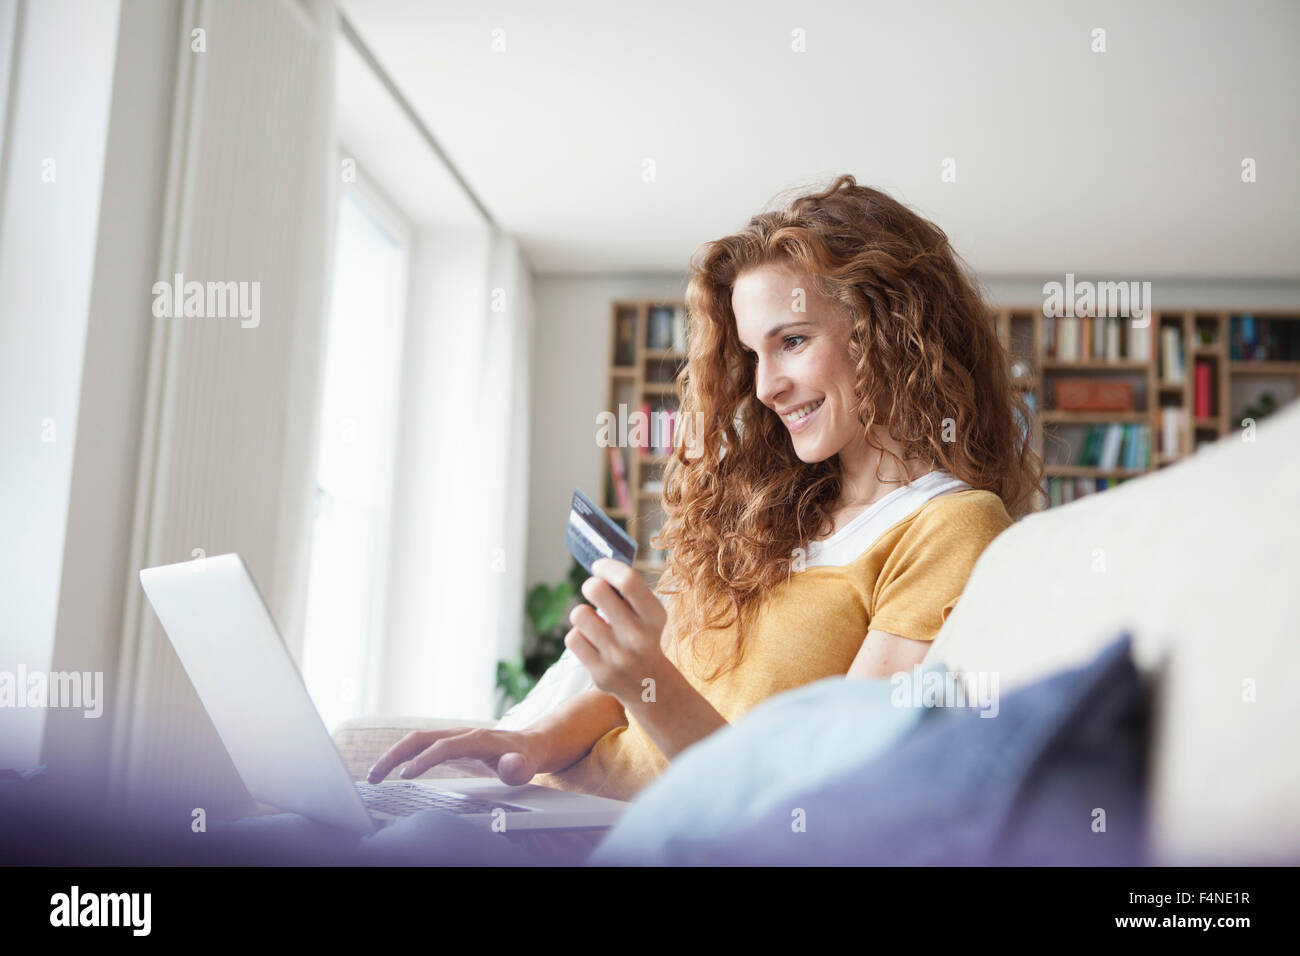 Smiling woman at home shopping online - Stock Image